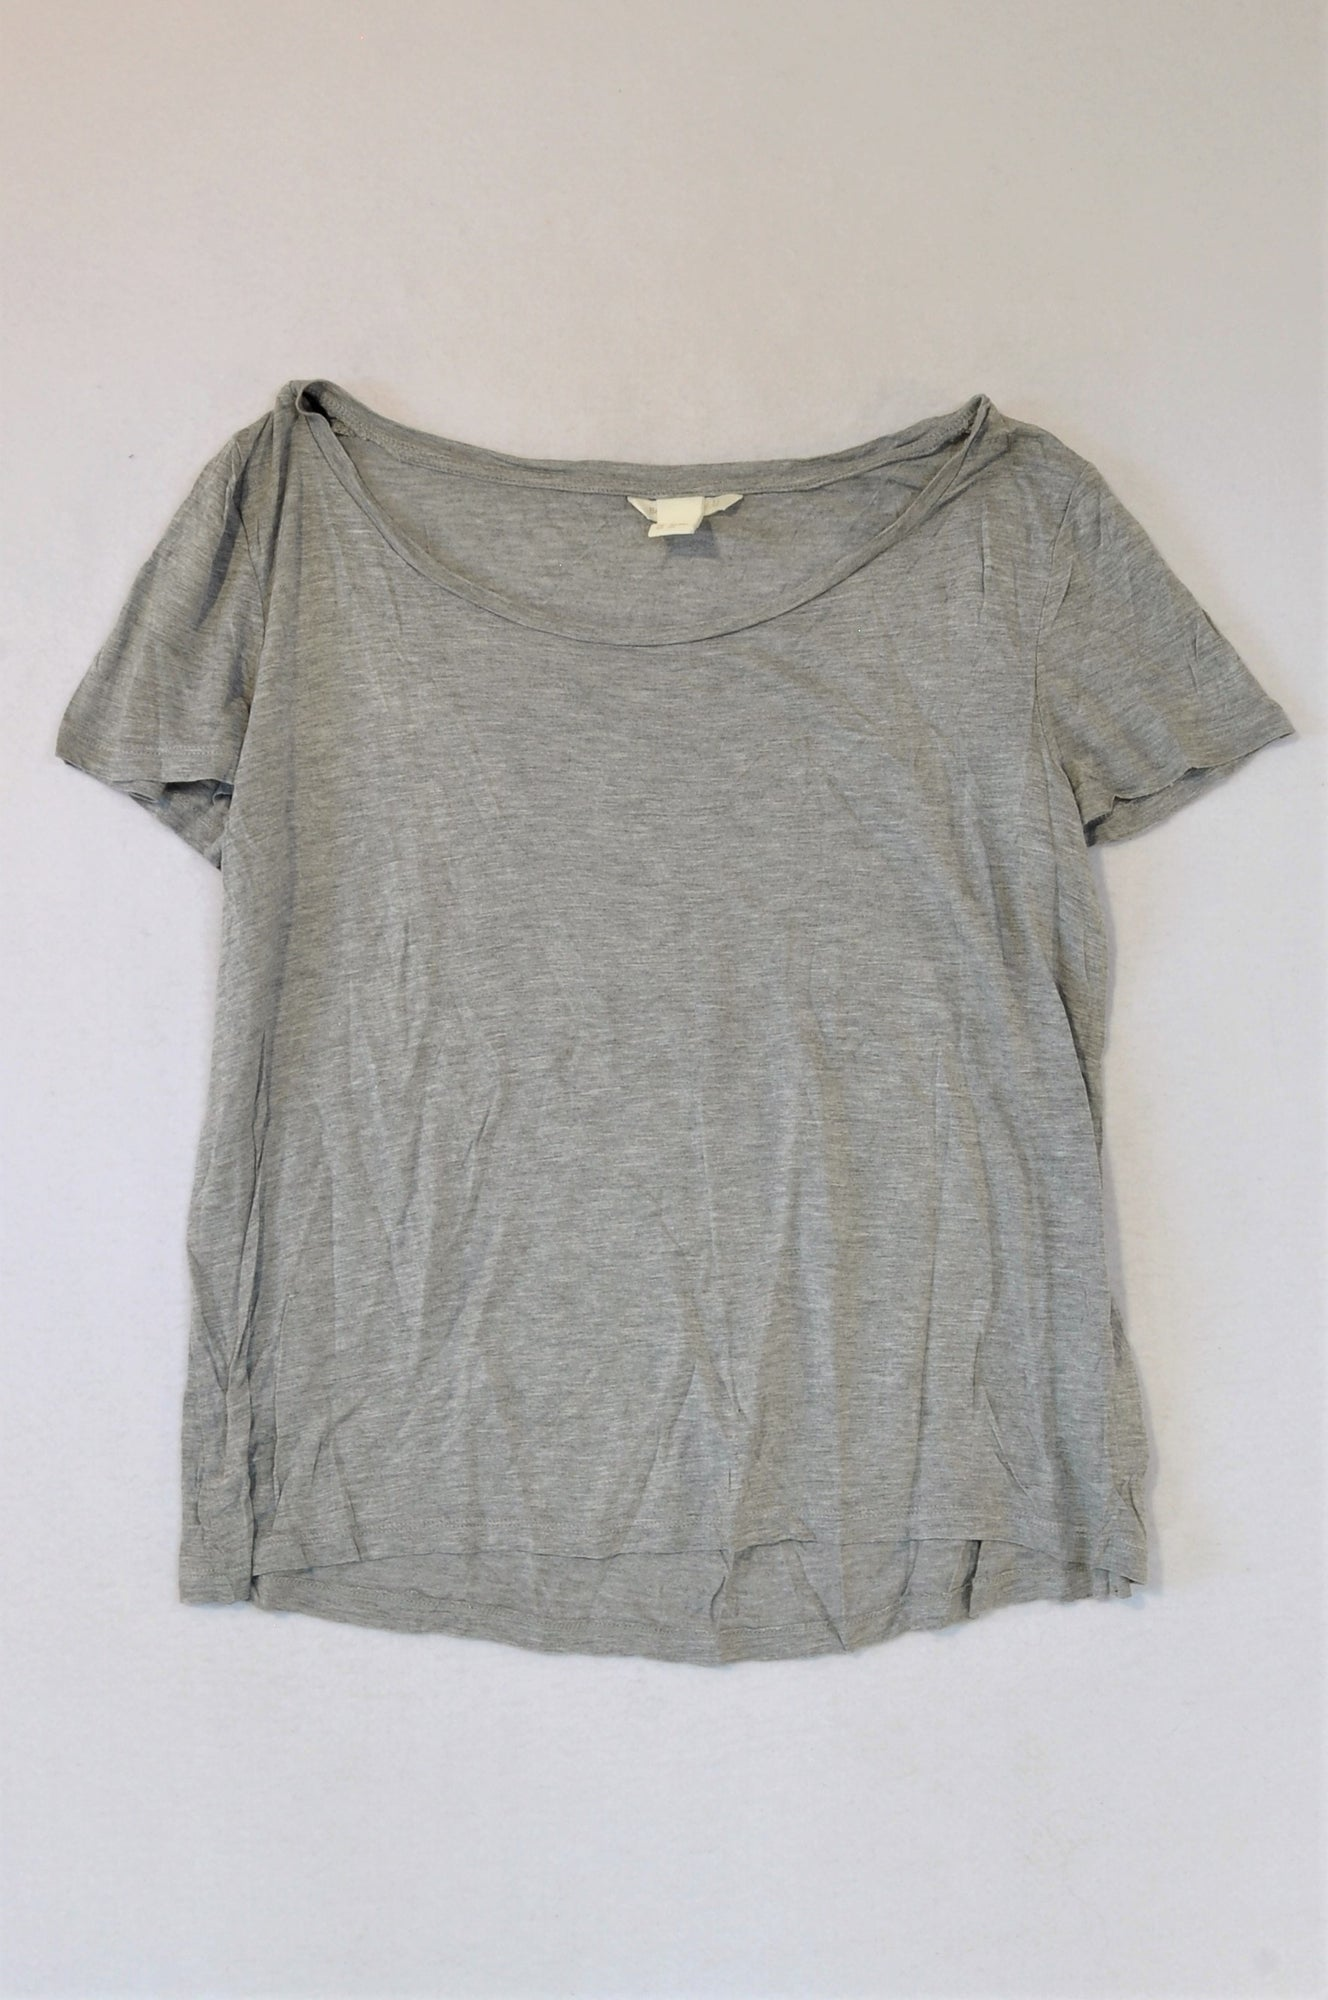 H&M Grey Basic T-shirt Women Size S